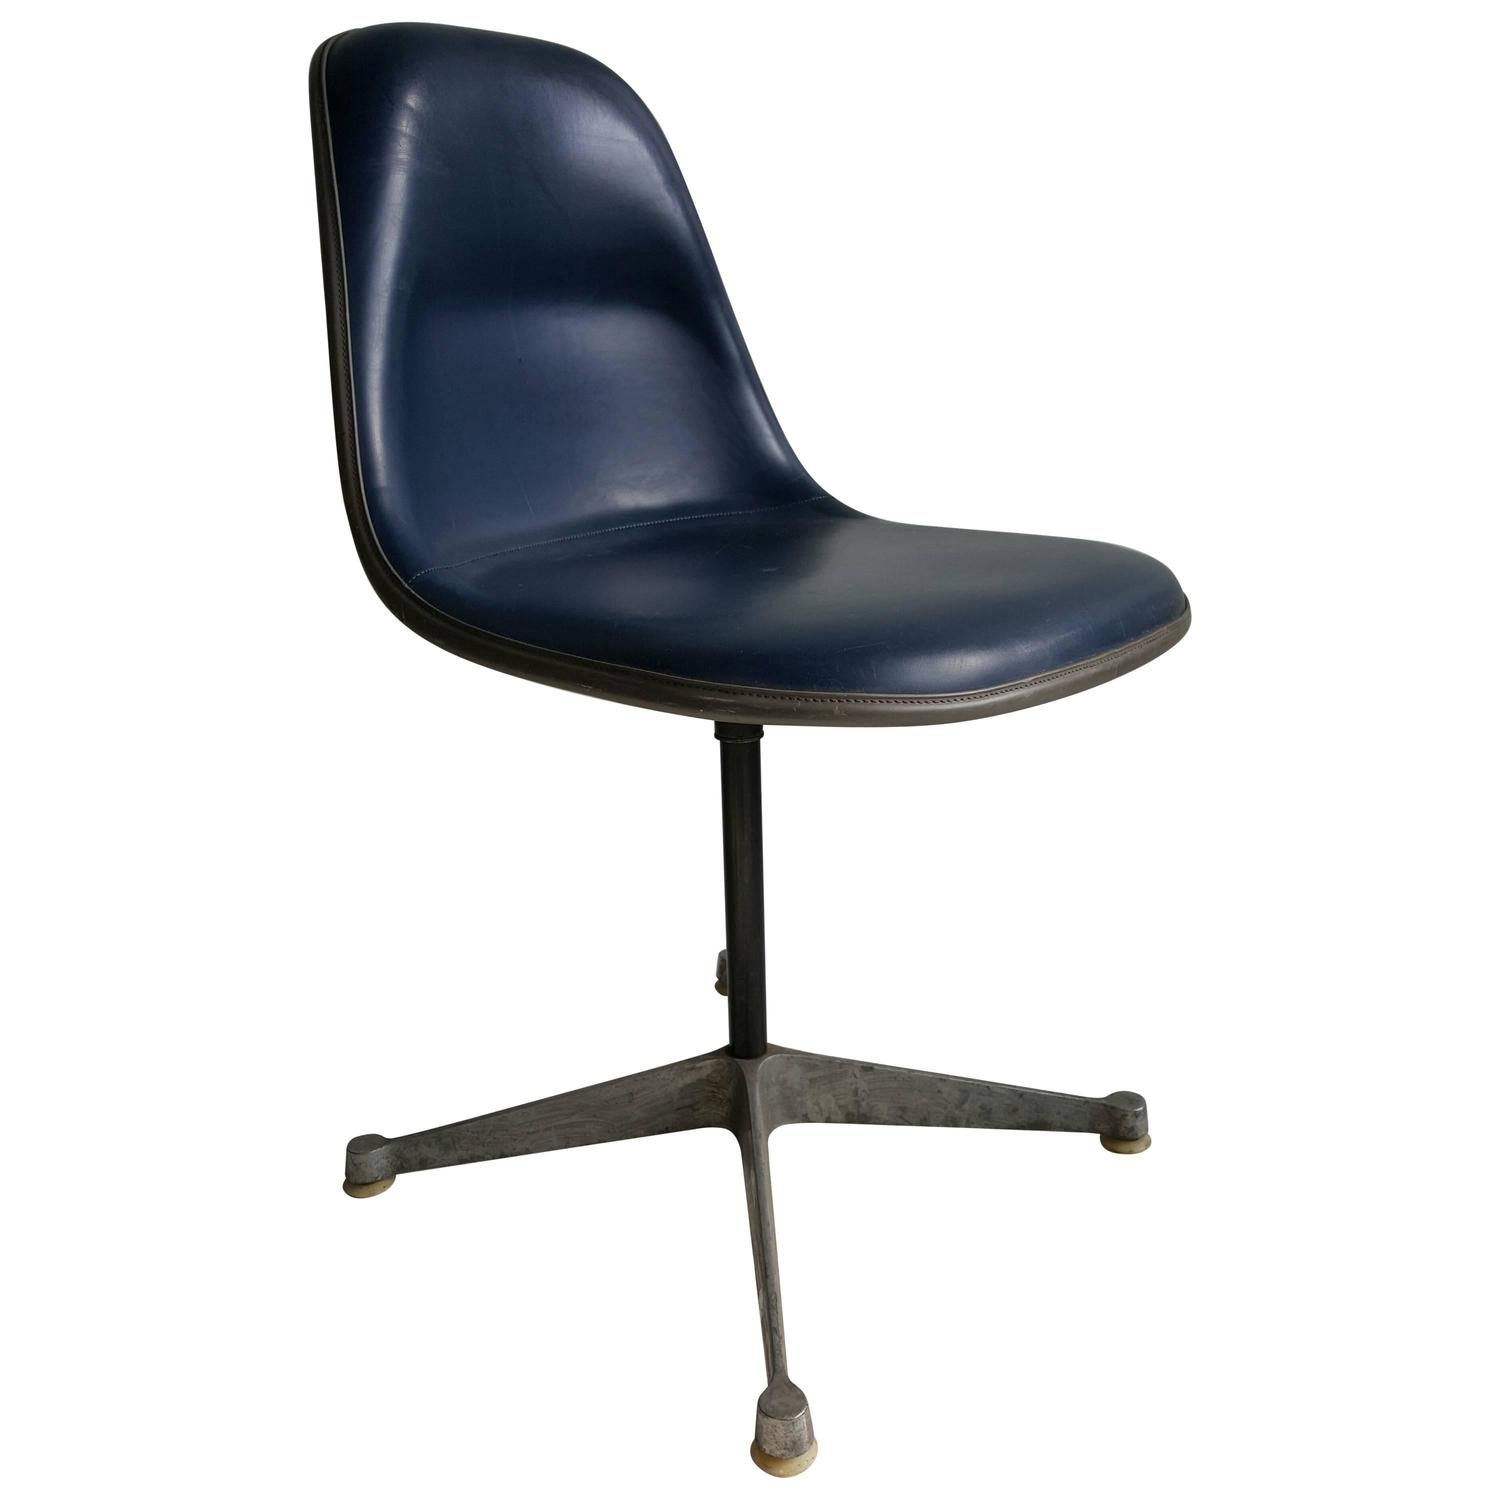 Charles and ray eames pscc padded desk chair by herman miller at 1stdibs - Eames office chair original ...